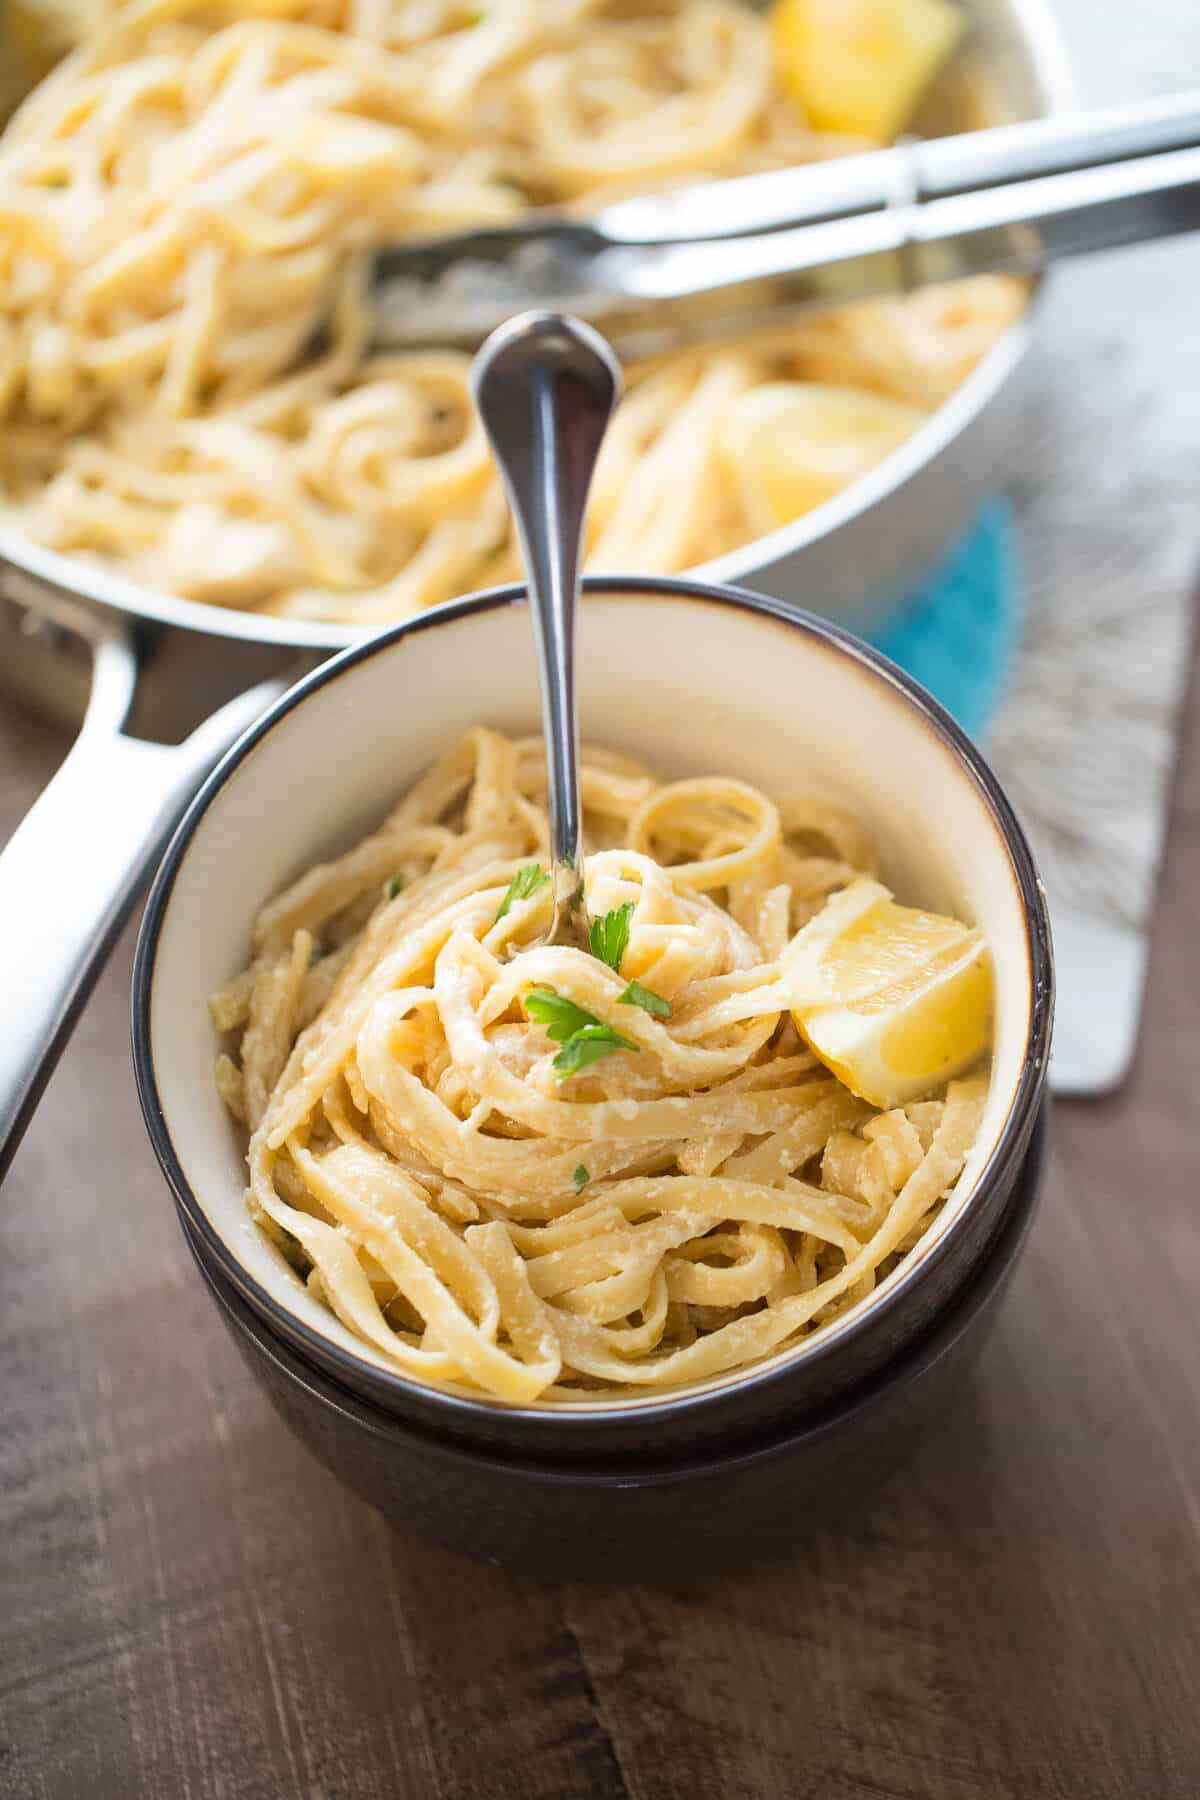 An easy Fettuccine Alfredo recipe that is perfect for those days you want a pick me up! The sauce is so light and simple, you are going to love it!